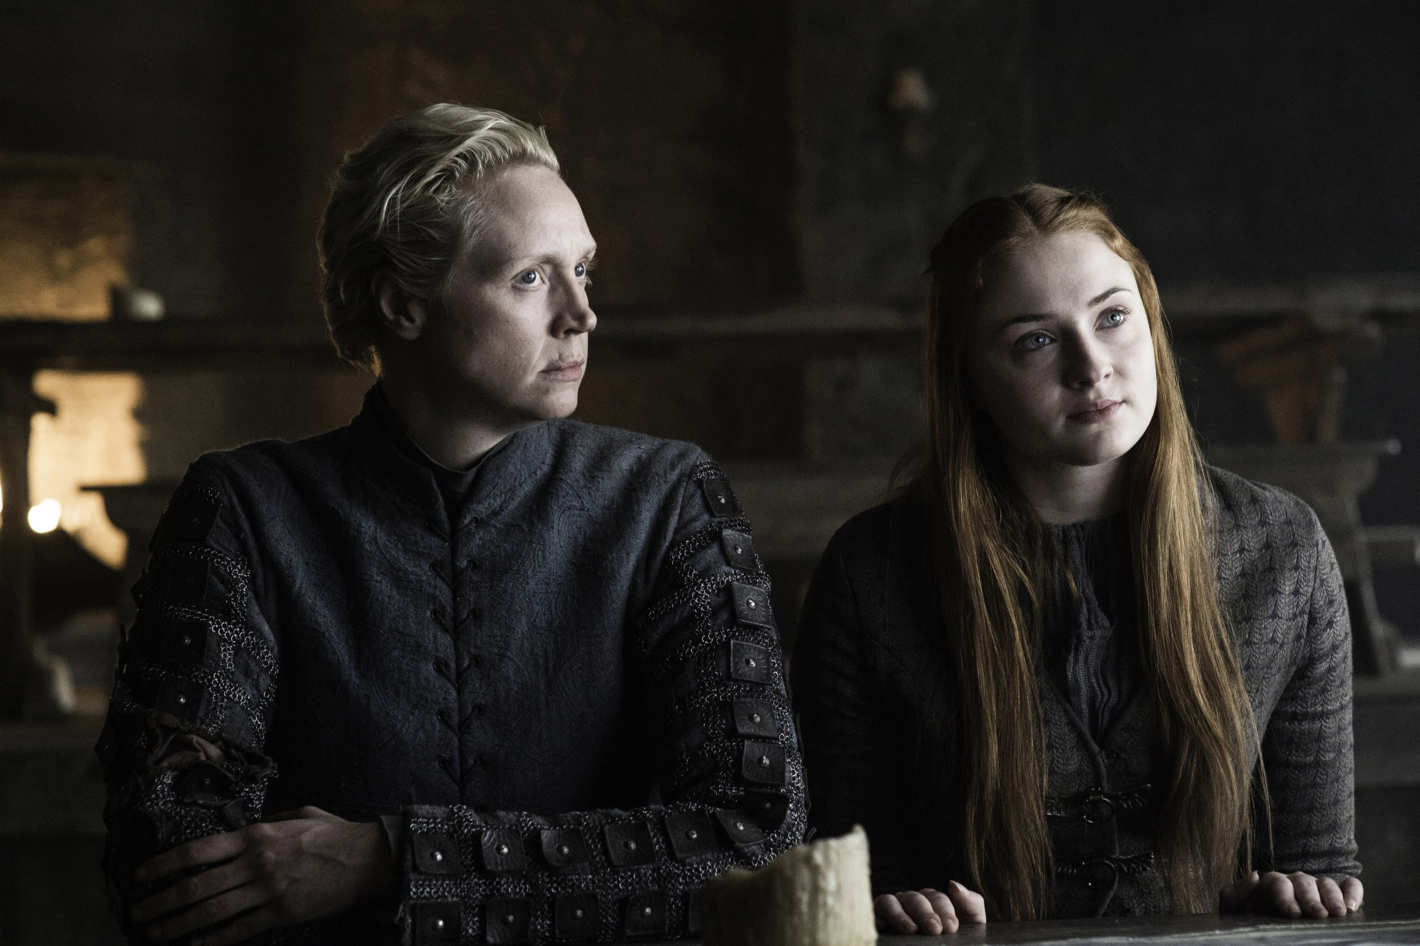 Gwendoline Christie Nude Pictures throughout game of thrones recap: holding the door